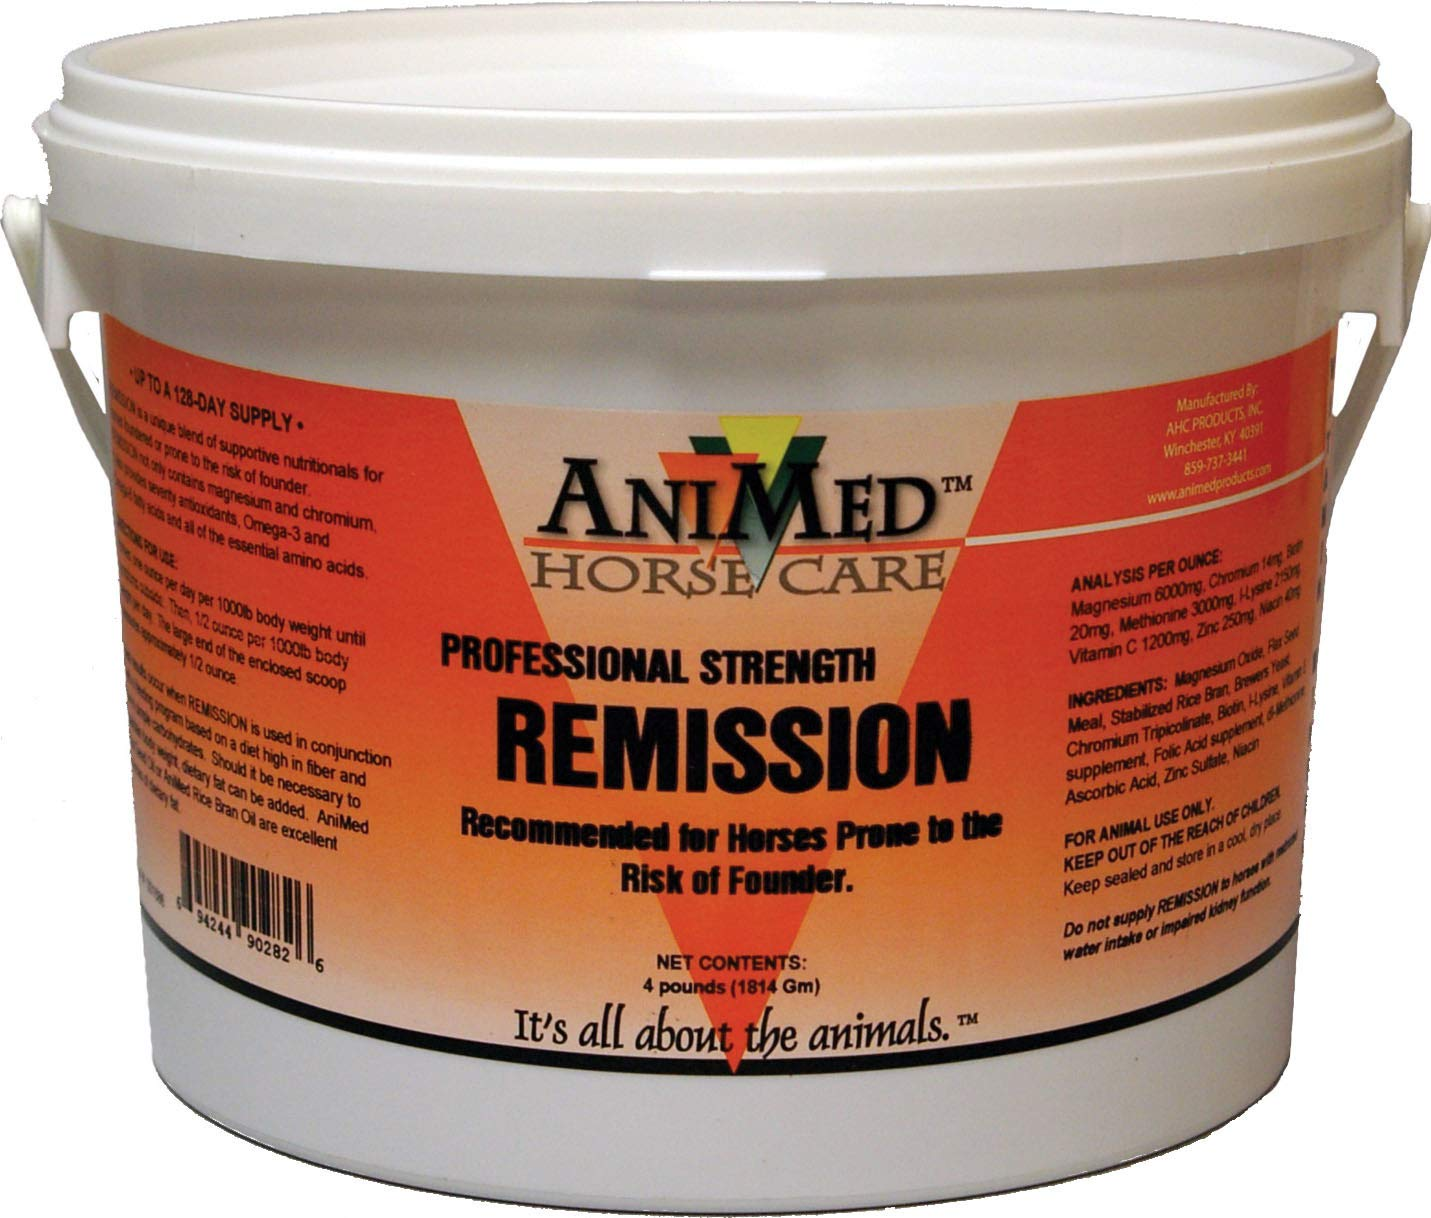 AniMed REMISSION FOUNDER TREATMENT FOR HORSES, 4 Pound by AniMed